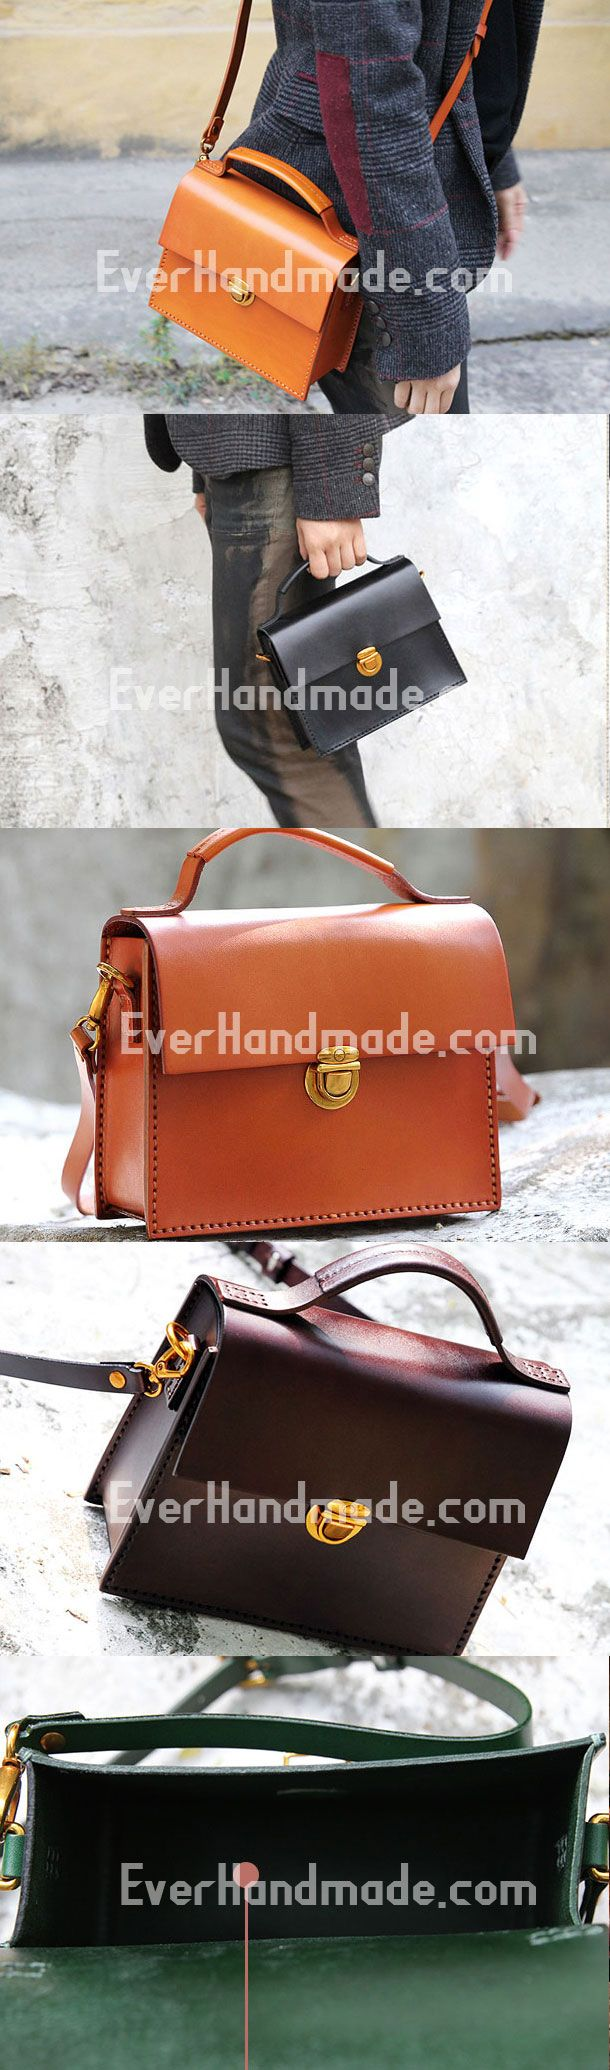 Handmade handbag purse leather crossbody bag purse shoulder bag for - Sale! Up to 75% OFF! Shop at Stylizio for women's and men's designer handbags, luxury sunglasses, watches, jewelry, purses, wallets, clothes, underwear